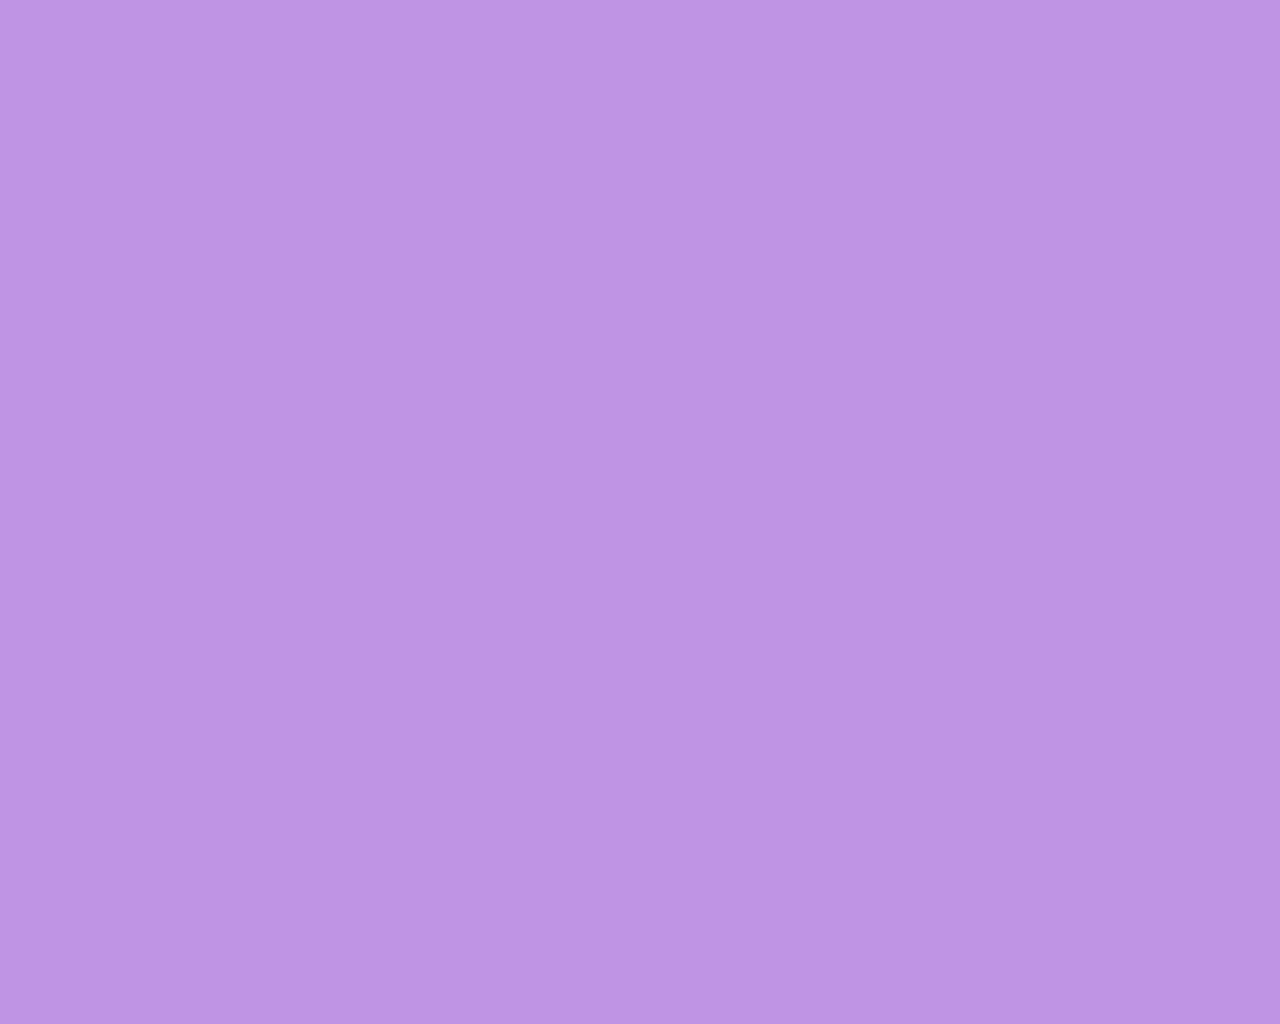 1280x1024 Bright Lavender Solid Color Background